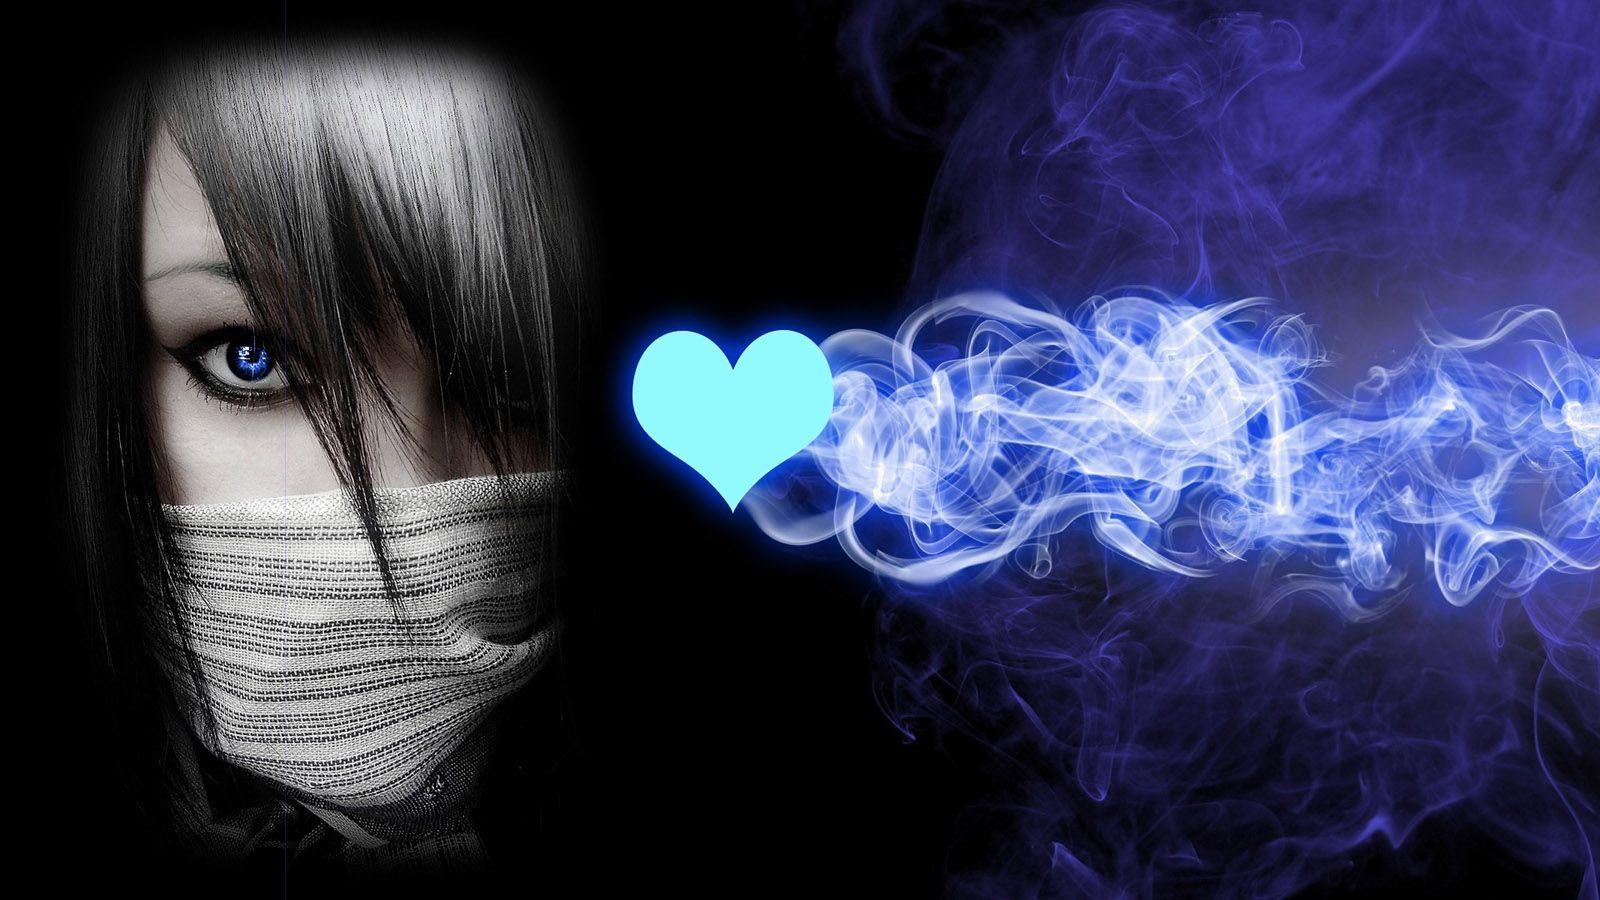 Love Wallpaper Girl Boy : Emo Love Wallpapers 2016 - Wallpaper cave